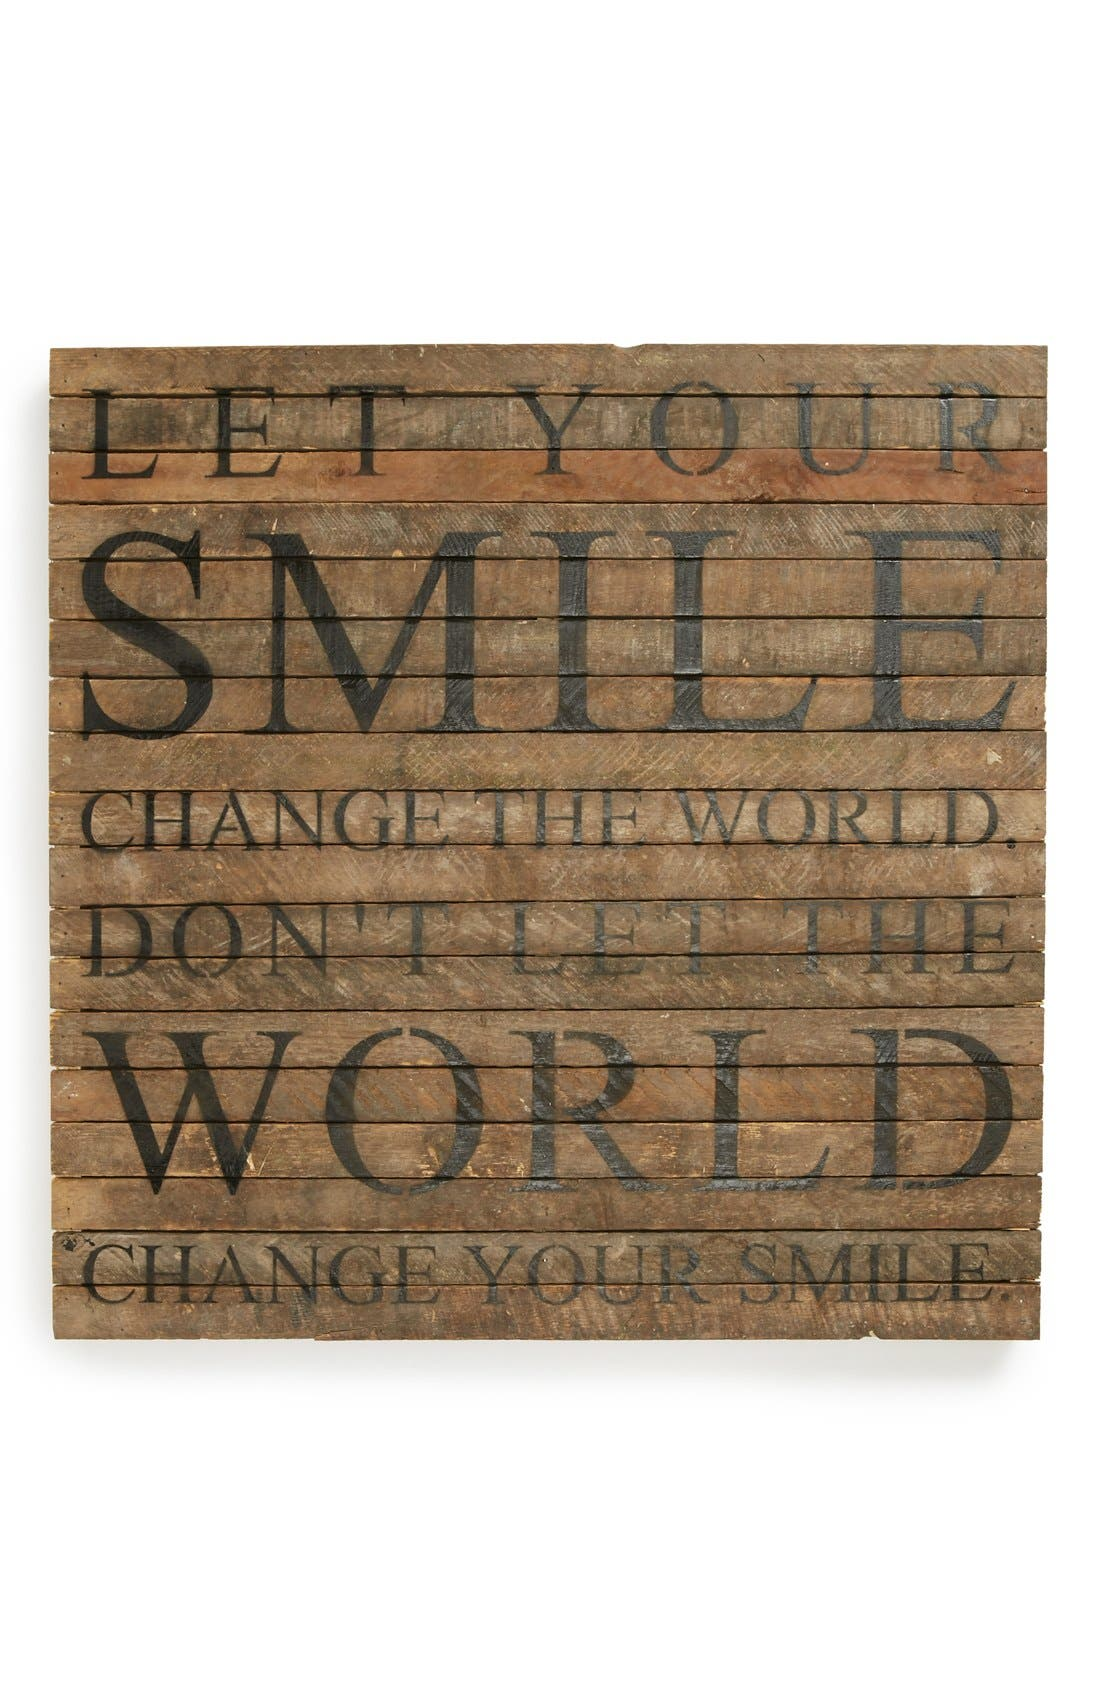 Alternate Image 1 Selected - Second Nature by Hand 'Let Your Smile Change the World' Wall Art